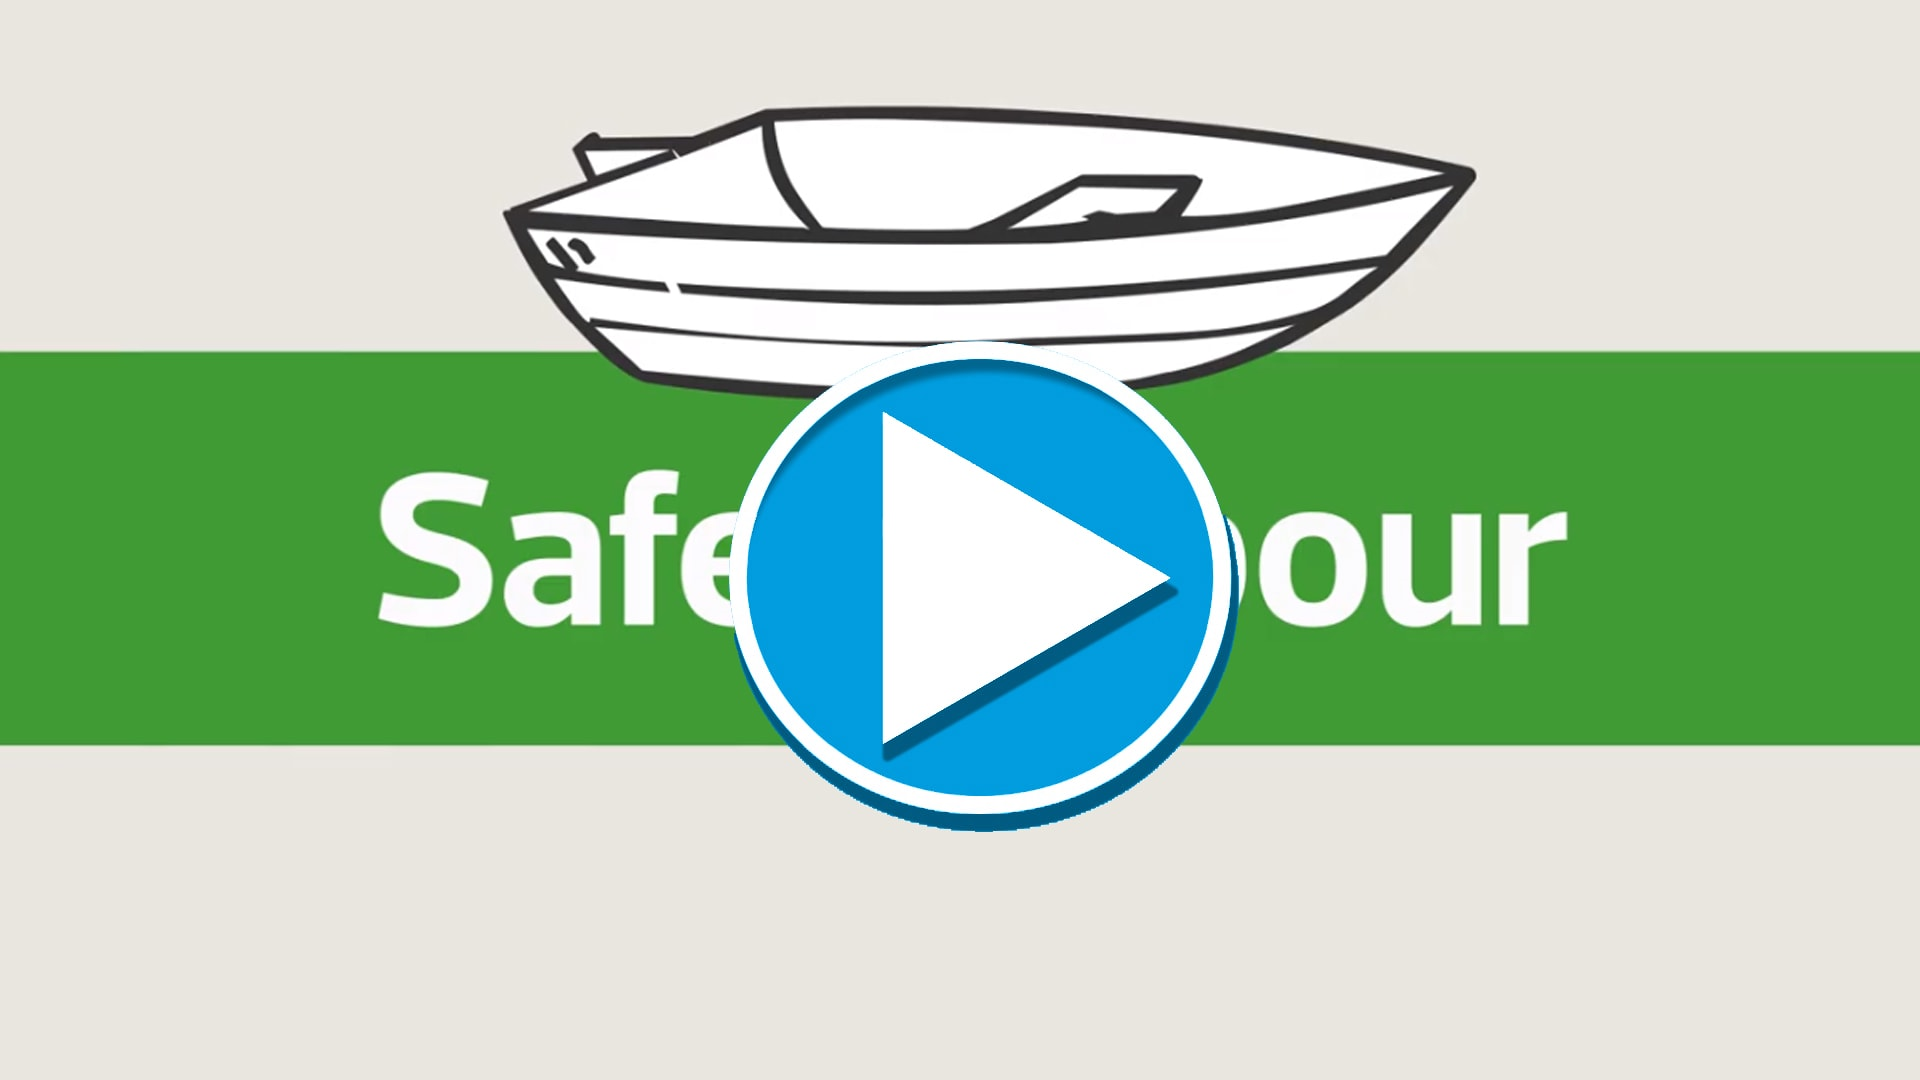 Learn more about Safe Harbour